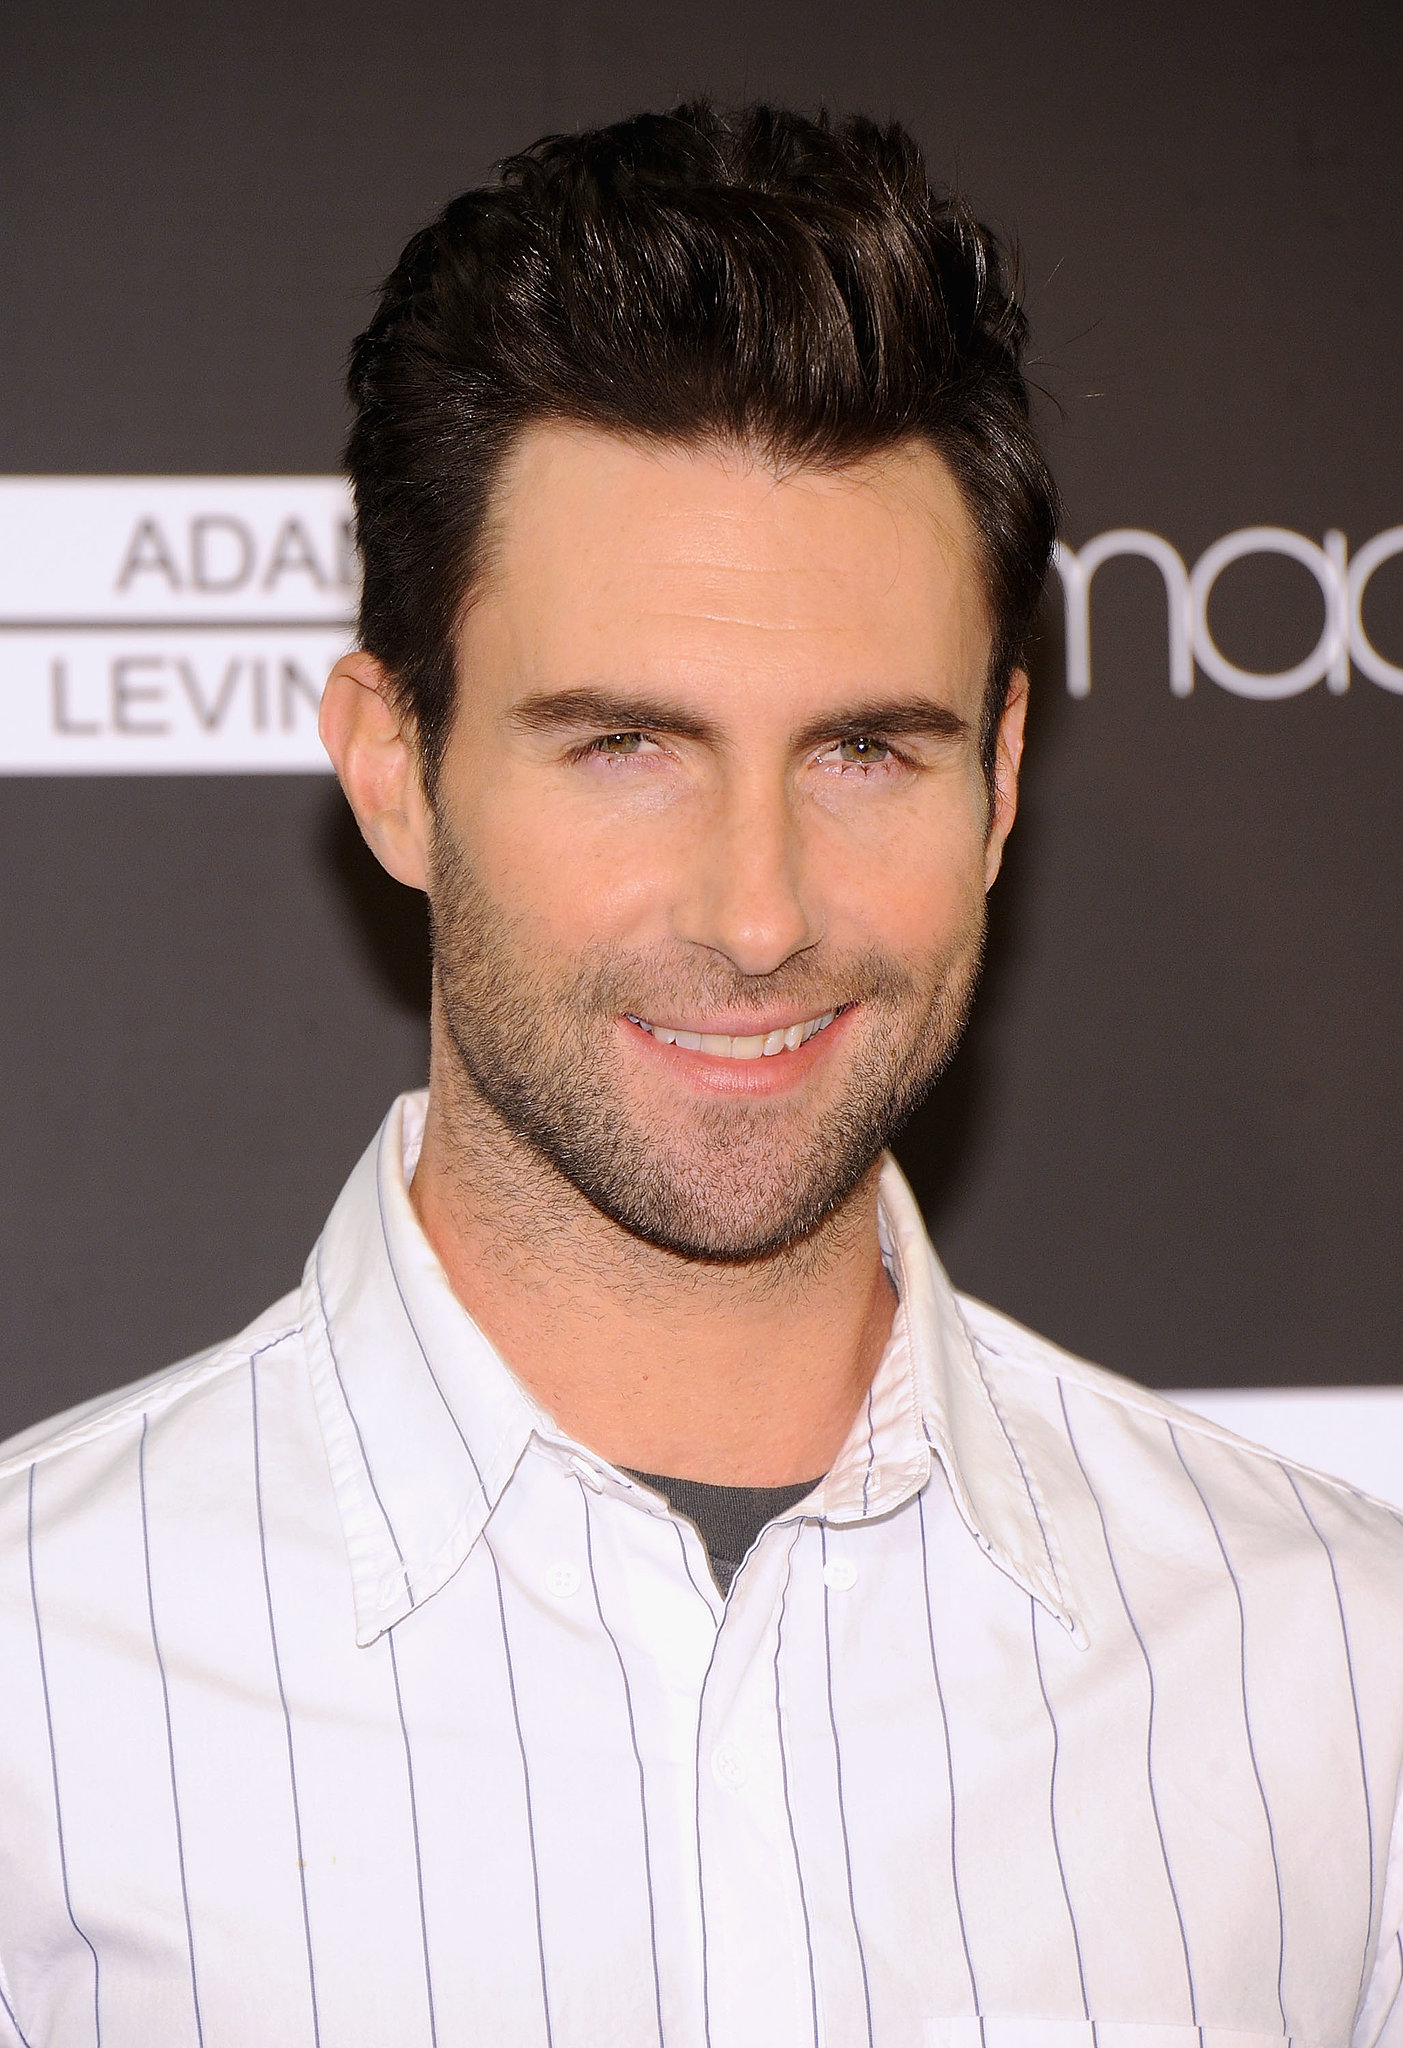 """Adam Levine told Out about his brother Michael in 2011: """"I can single-handedly dispel any ideas that sexuality is acquired. Trust me: you're born with it. My brother is gay, and we knew when he was 2. We all knew."""""""